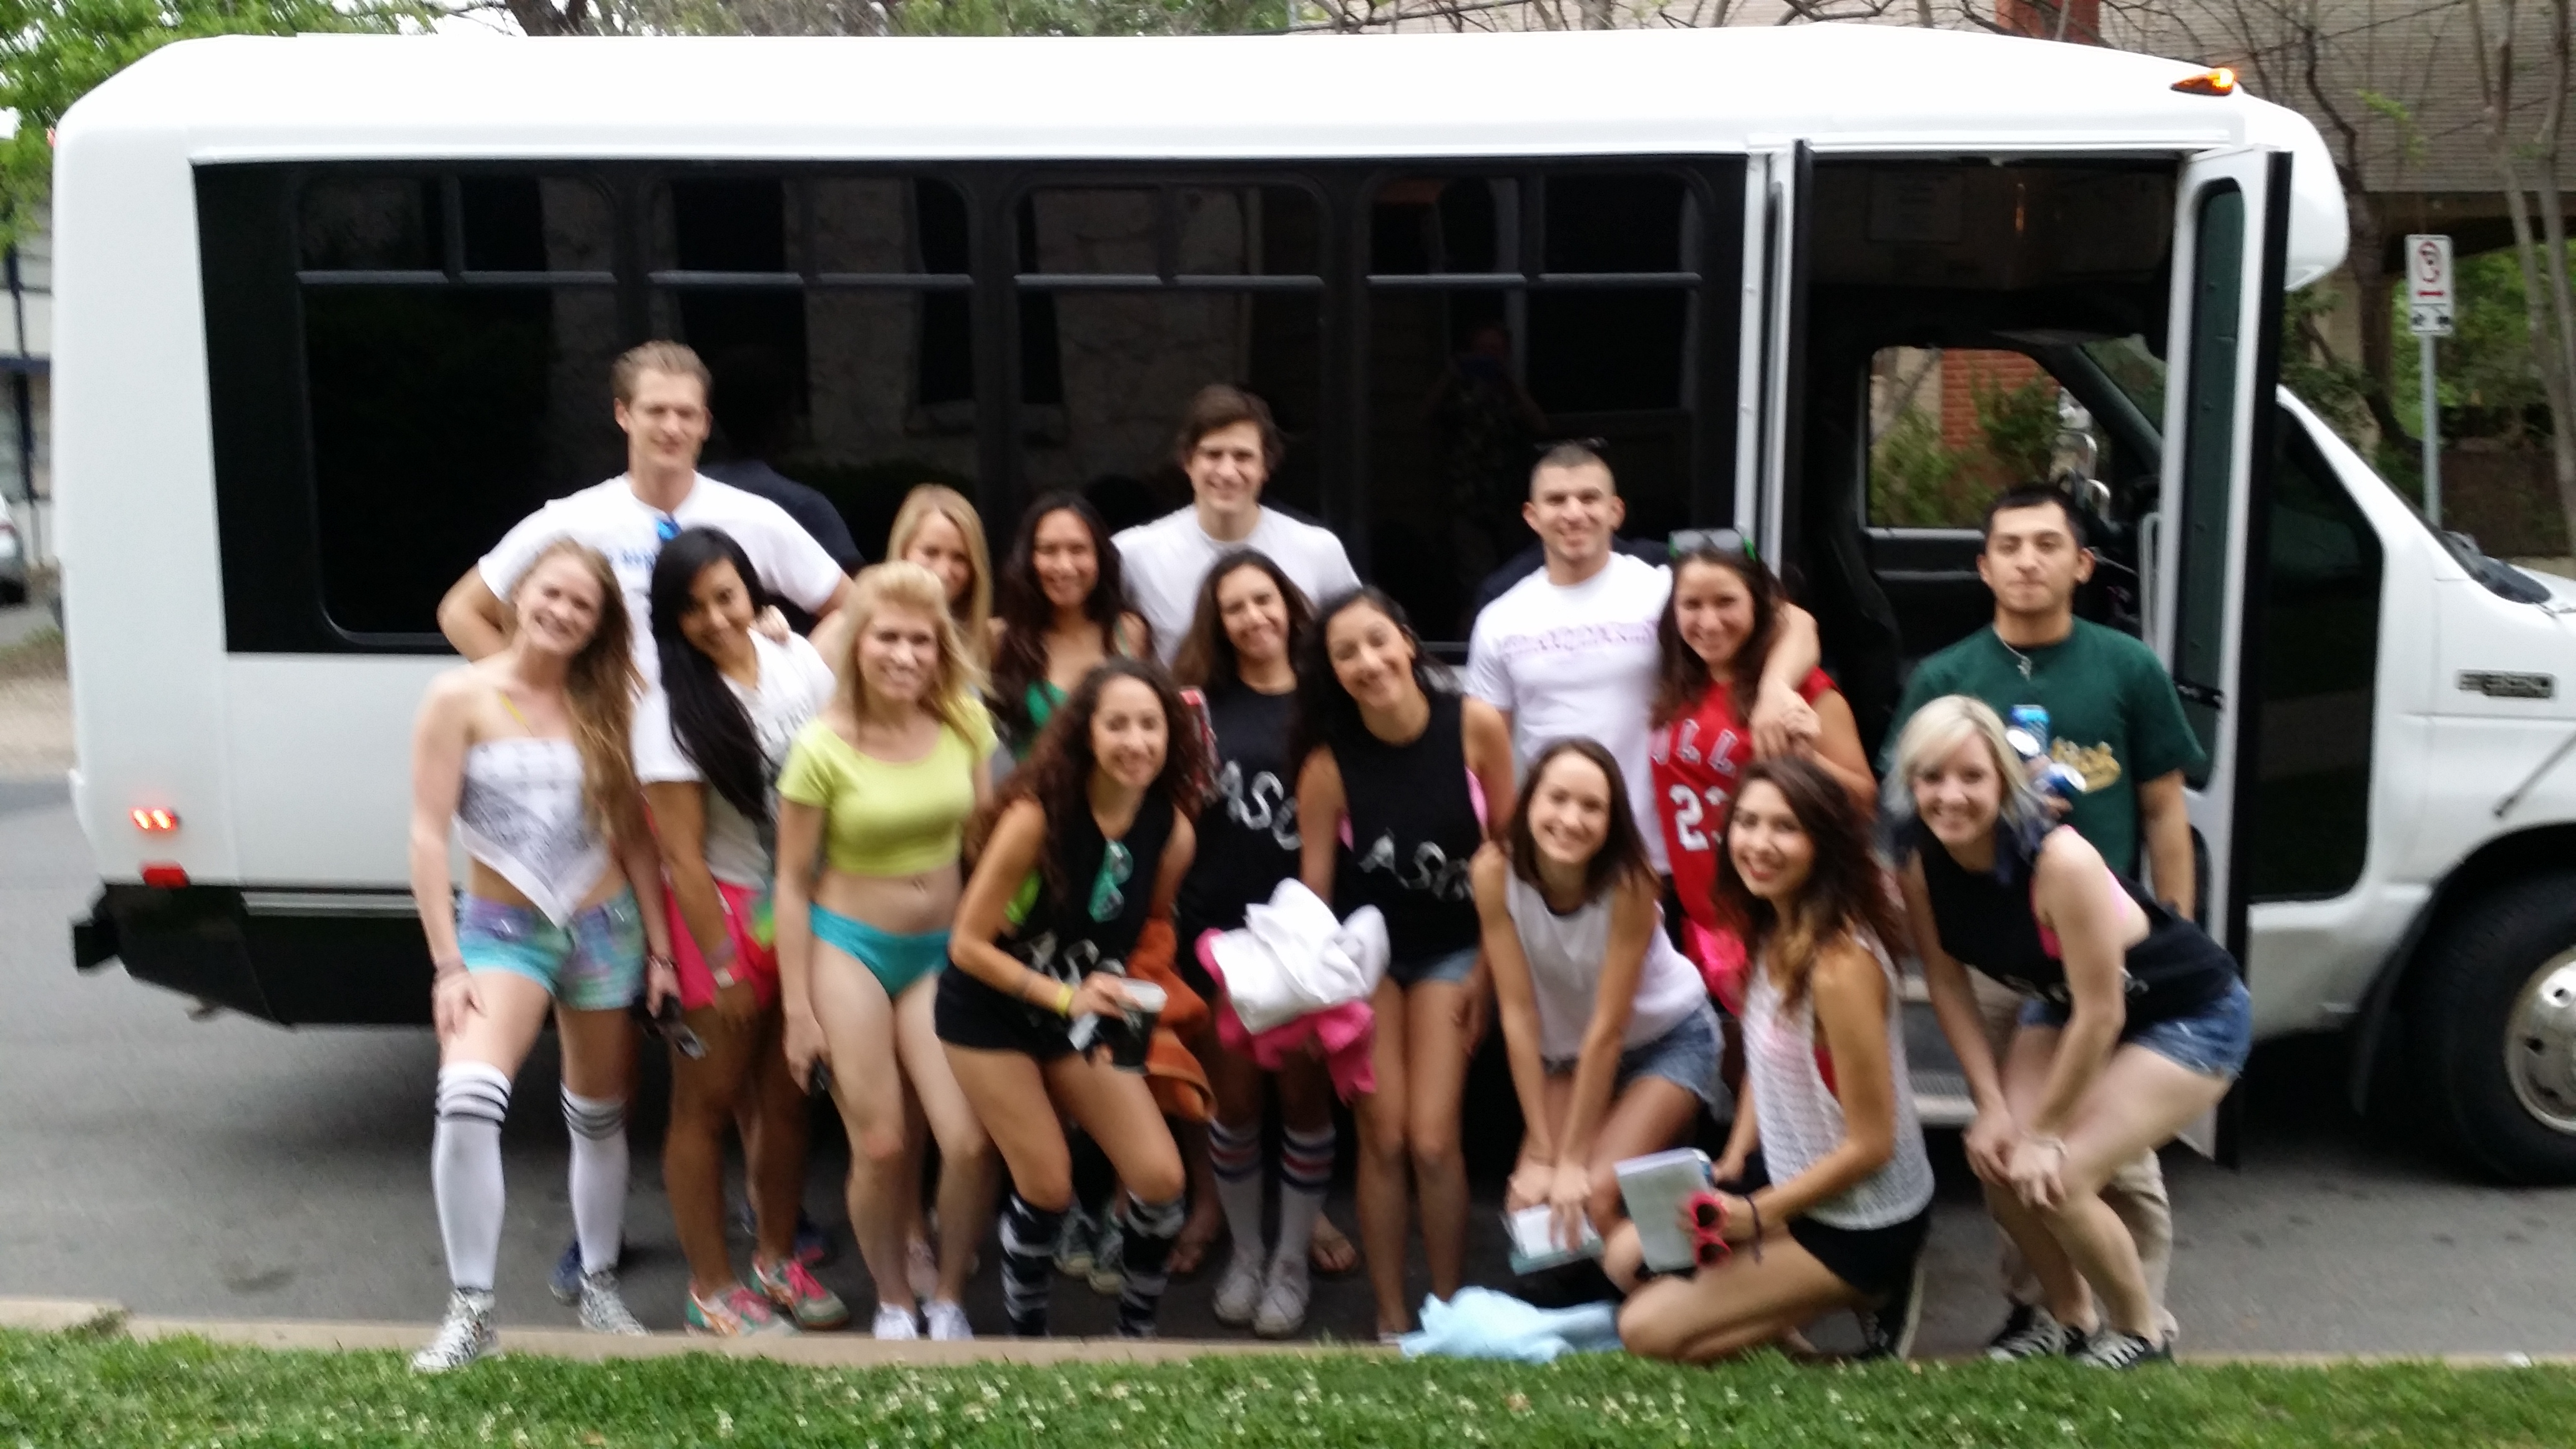 Austin Party Shuttle to the rescue.